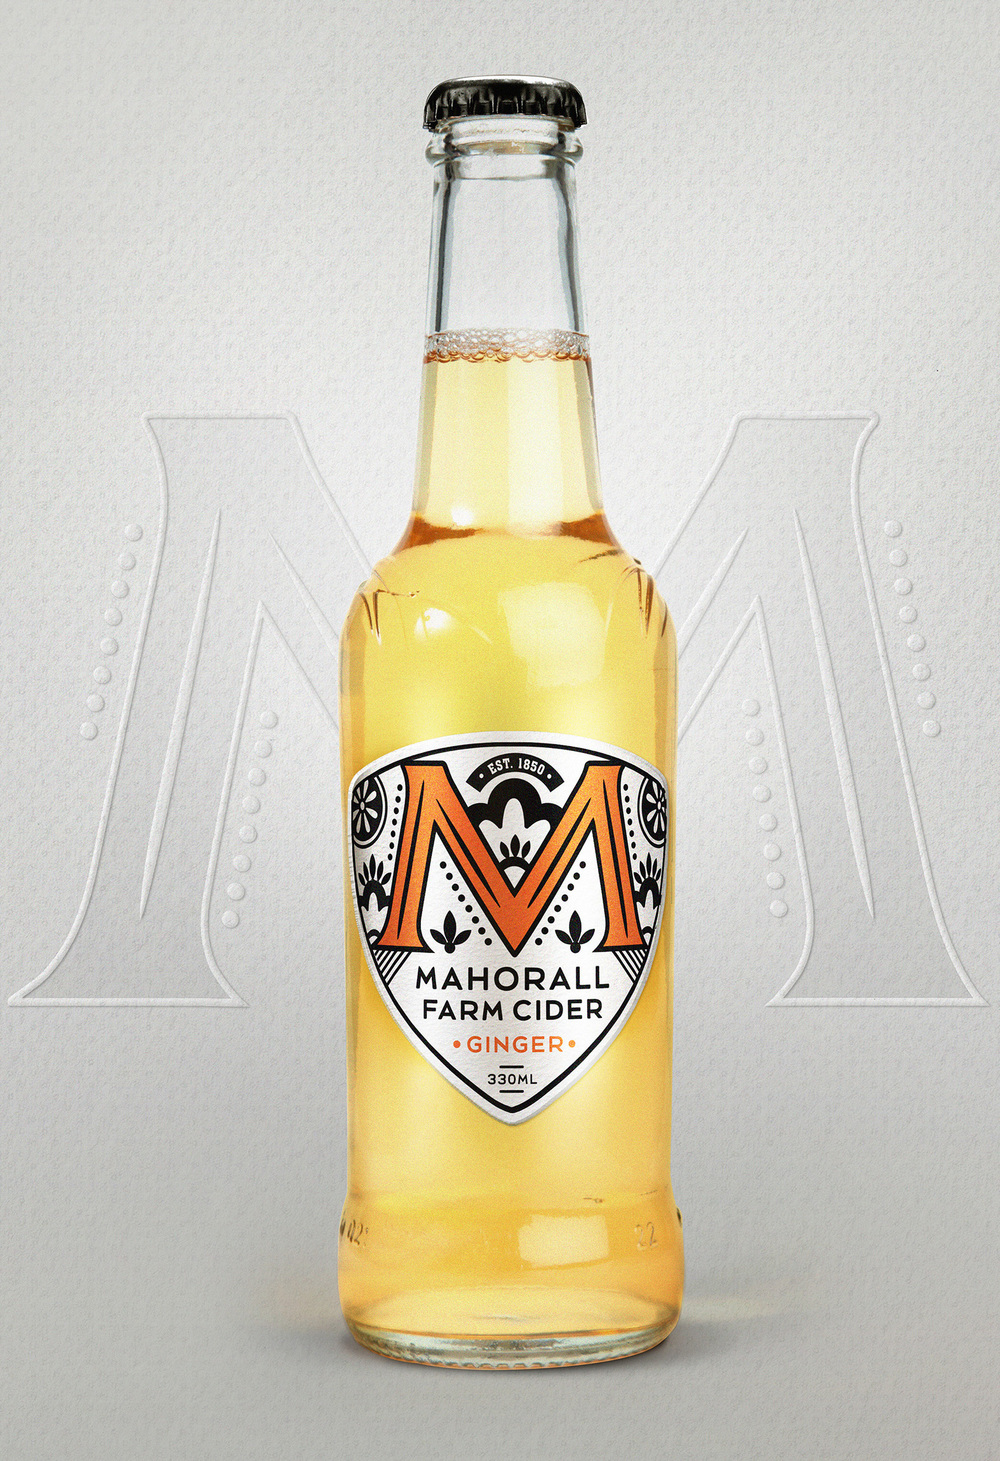 Alcohol cider branding and packaging design by Our Revolution